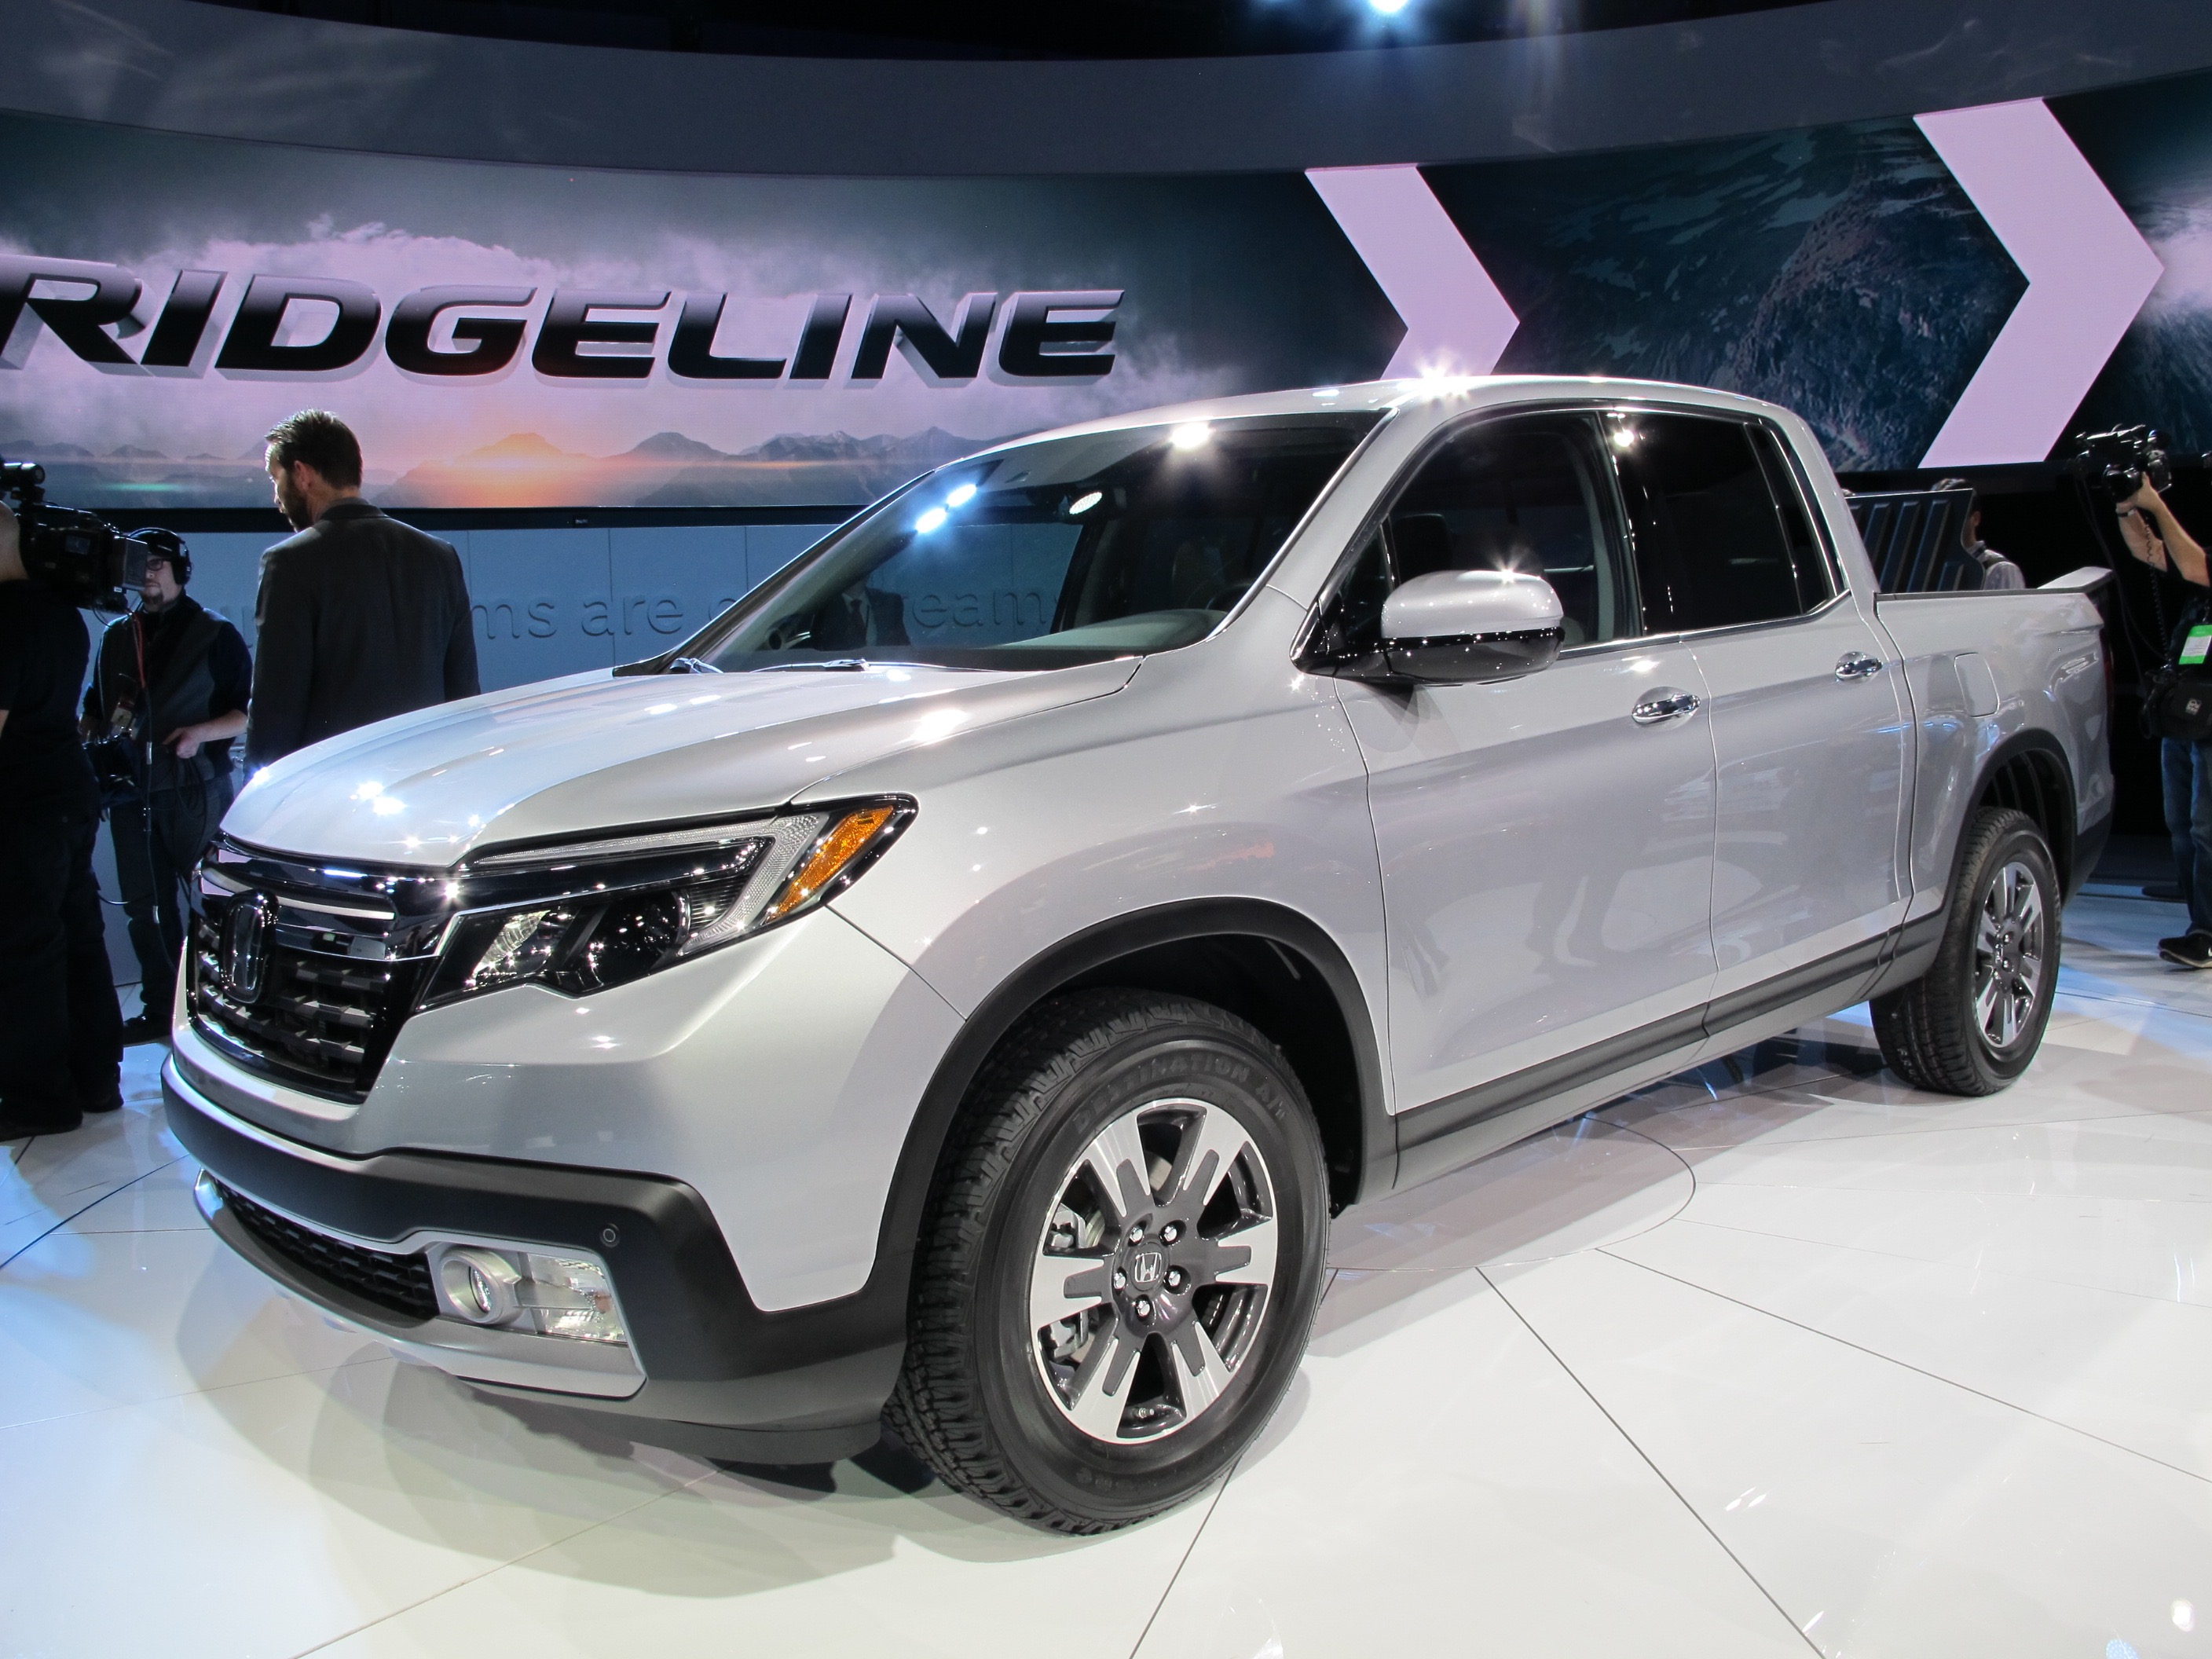 Image Result For Honda Ridgeline Snow